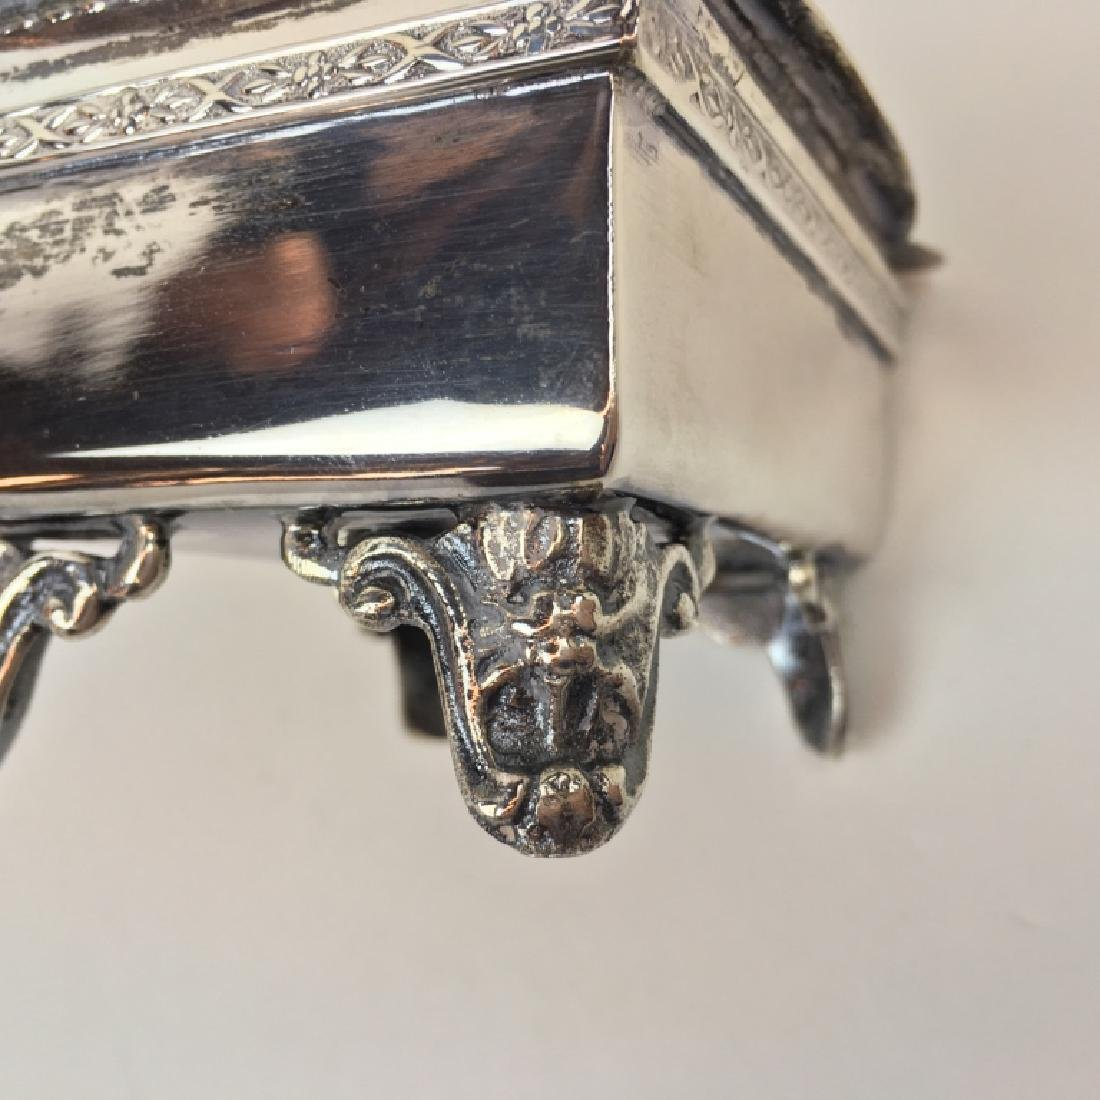 STERLING ART DECO DRESSER BOX & JEWELRY CASKET - 19